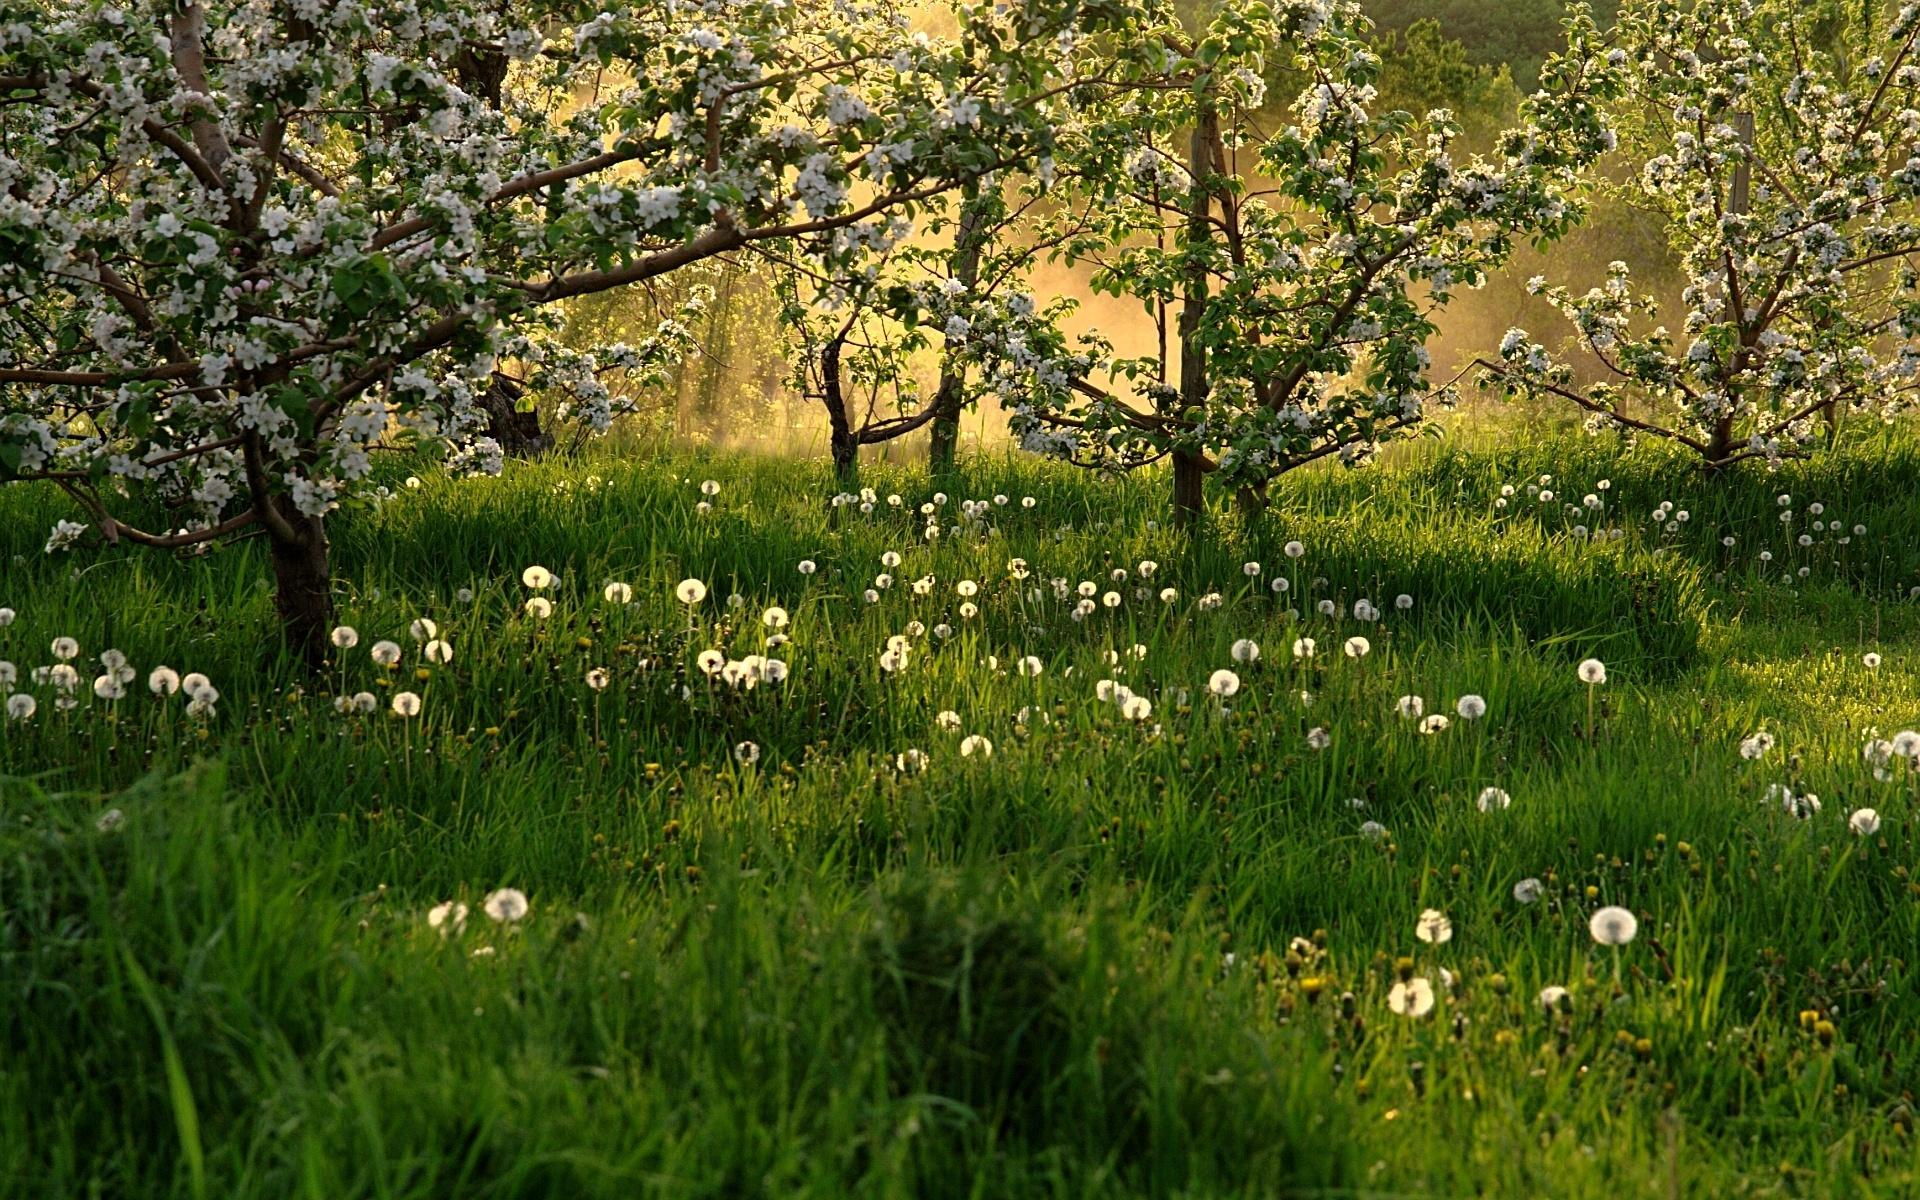 spring nature wallpapers 1080p - photo #6